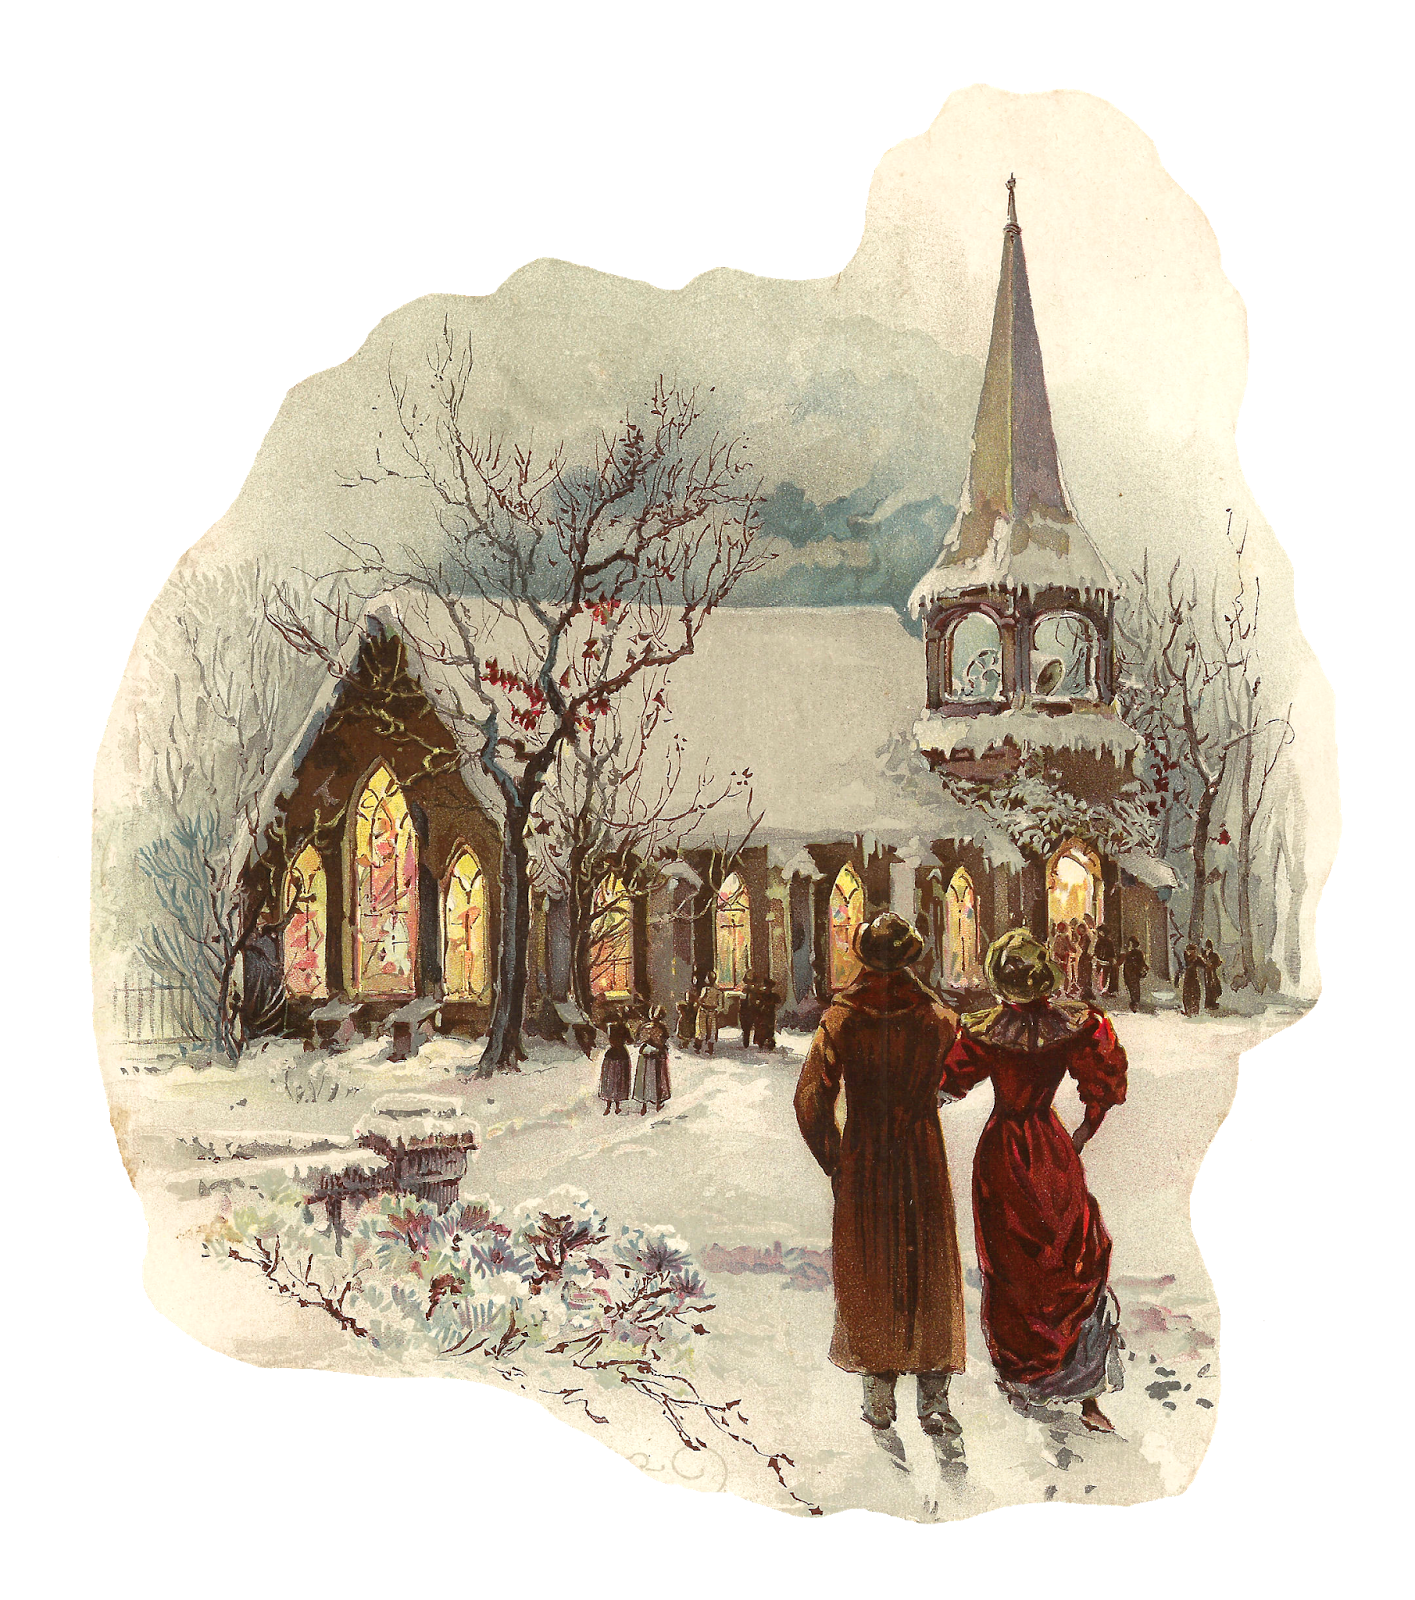 http://2.bp.blogspot.com/-_9gOmU_KTbQ/VKWueStocvI/AAAAAAAAUoM/mQgugmqS53g/s1600/scrap_church_winter_couple_gmpng.png